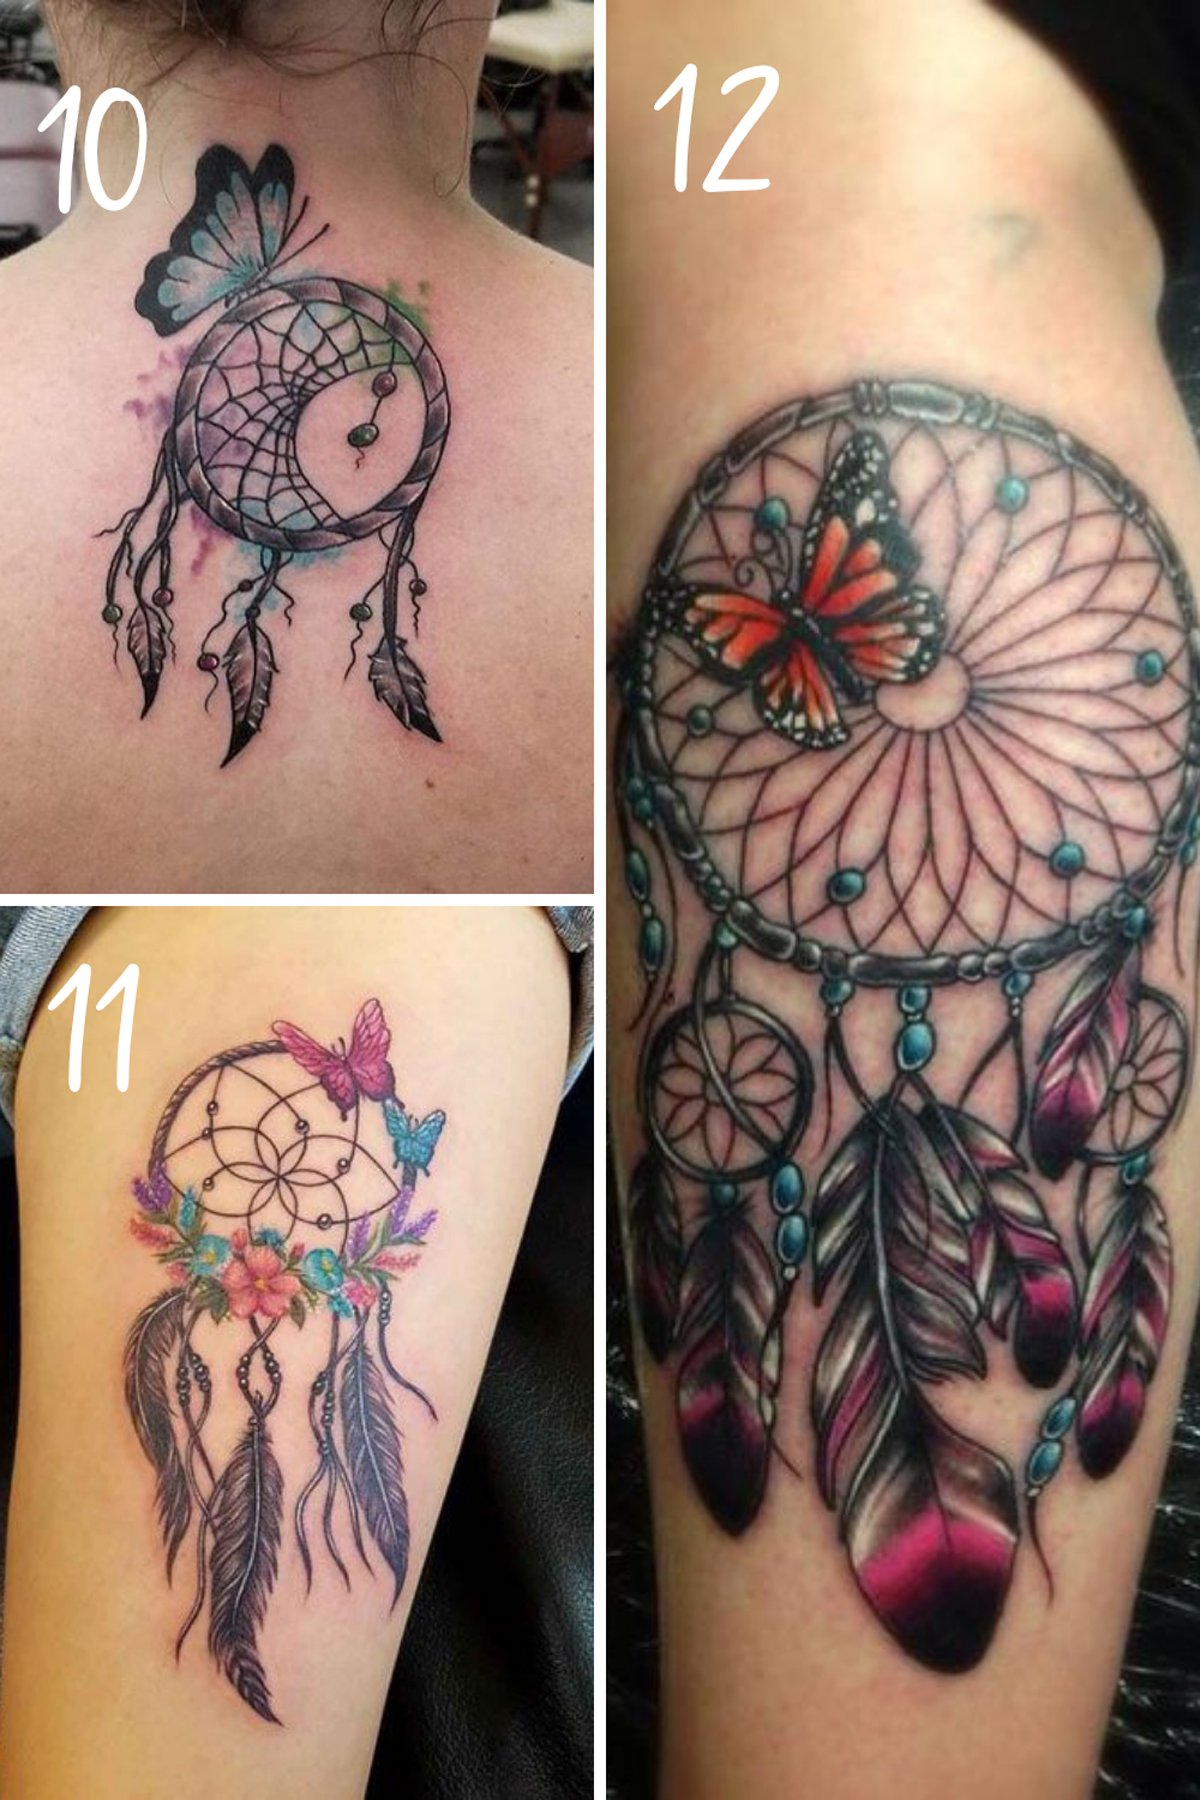 Butterfly Tattoos with dreams